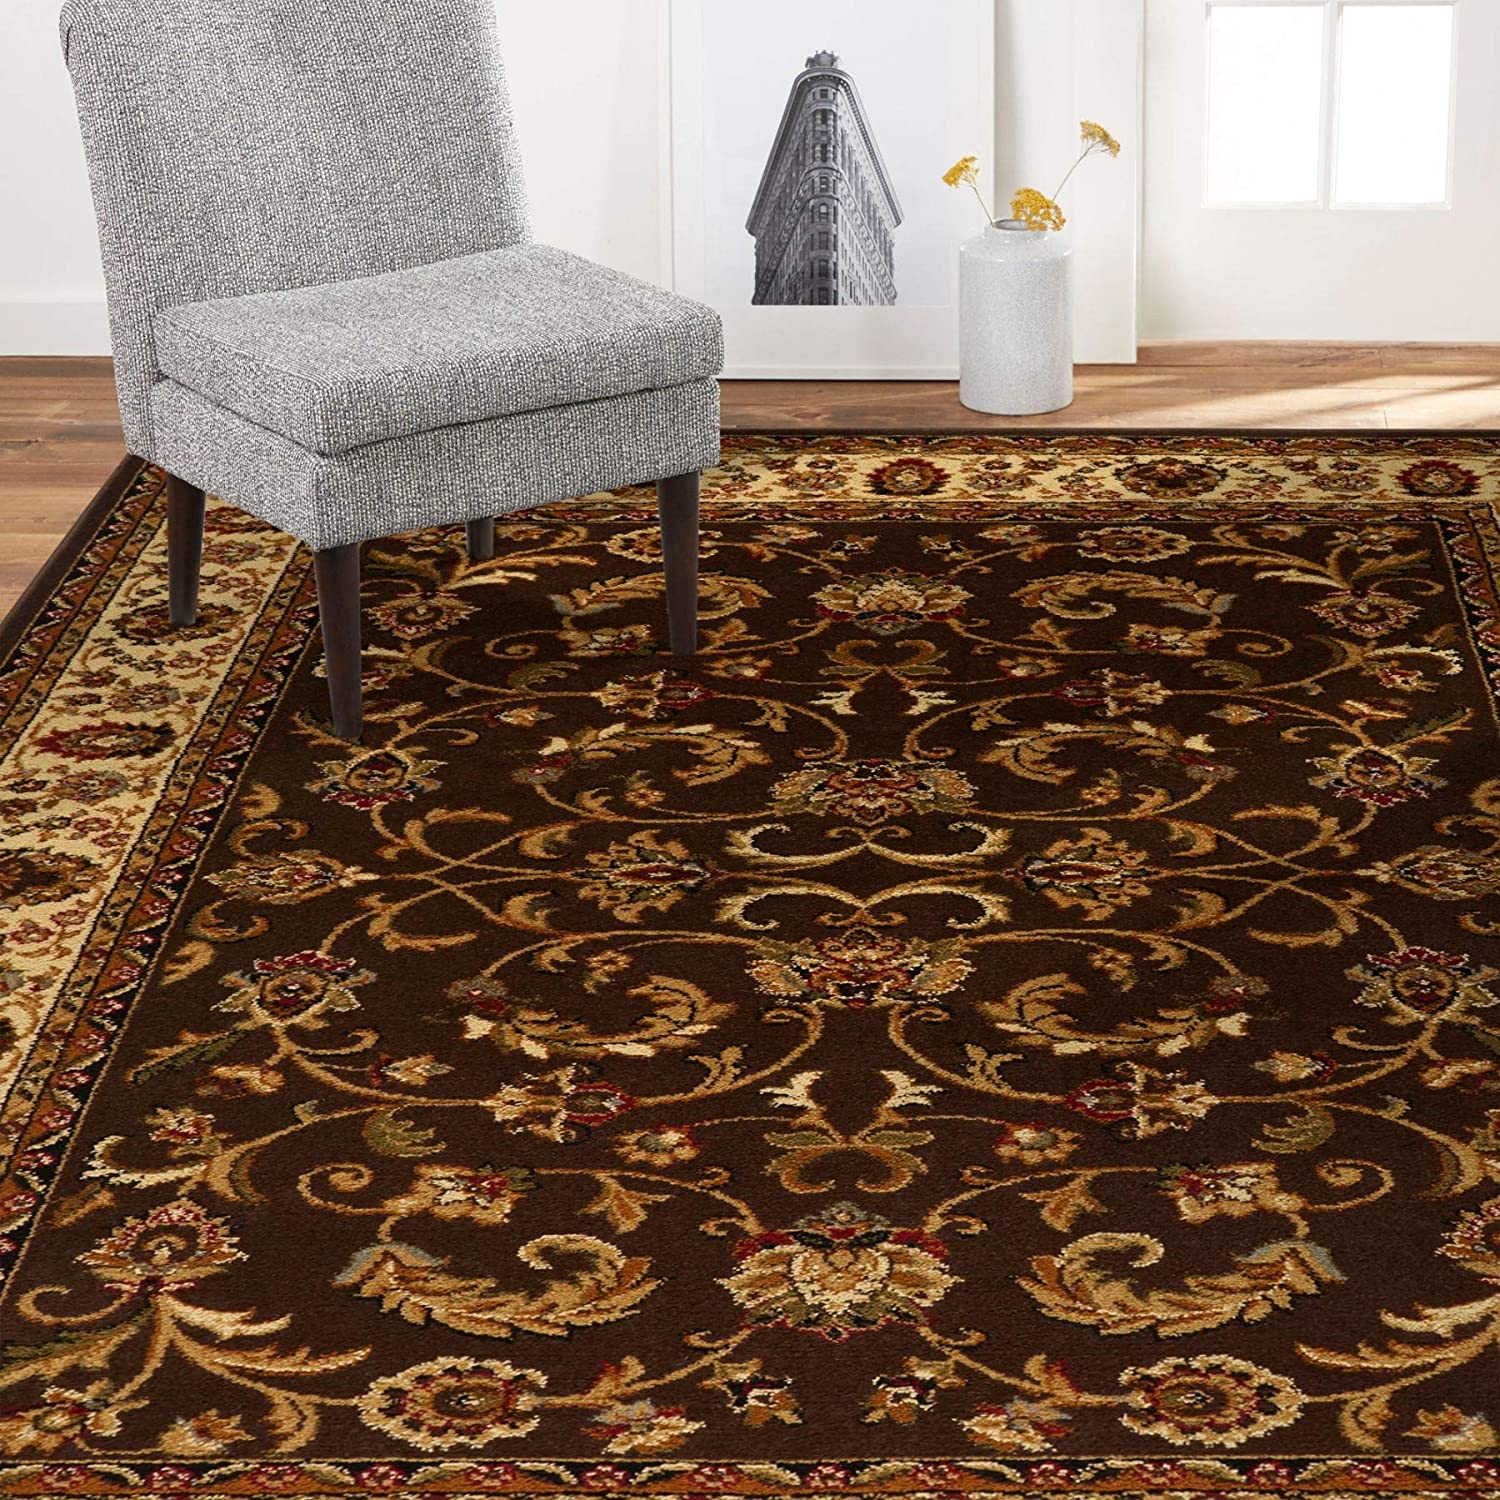 Home Dynamix Royalty Max 62% OFF Elati Traditional store Orie Area Rug 7'8